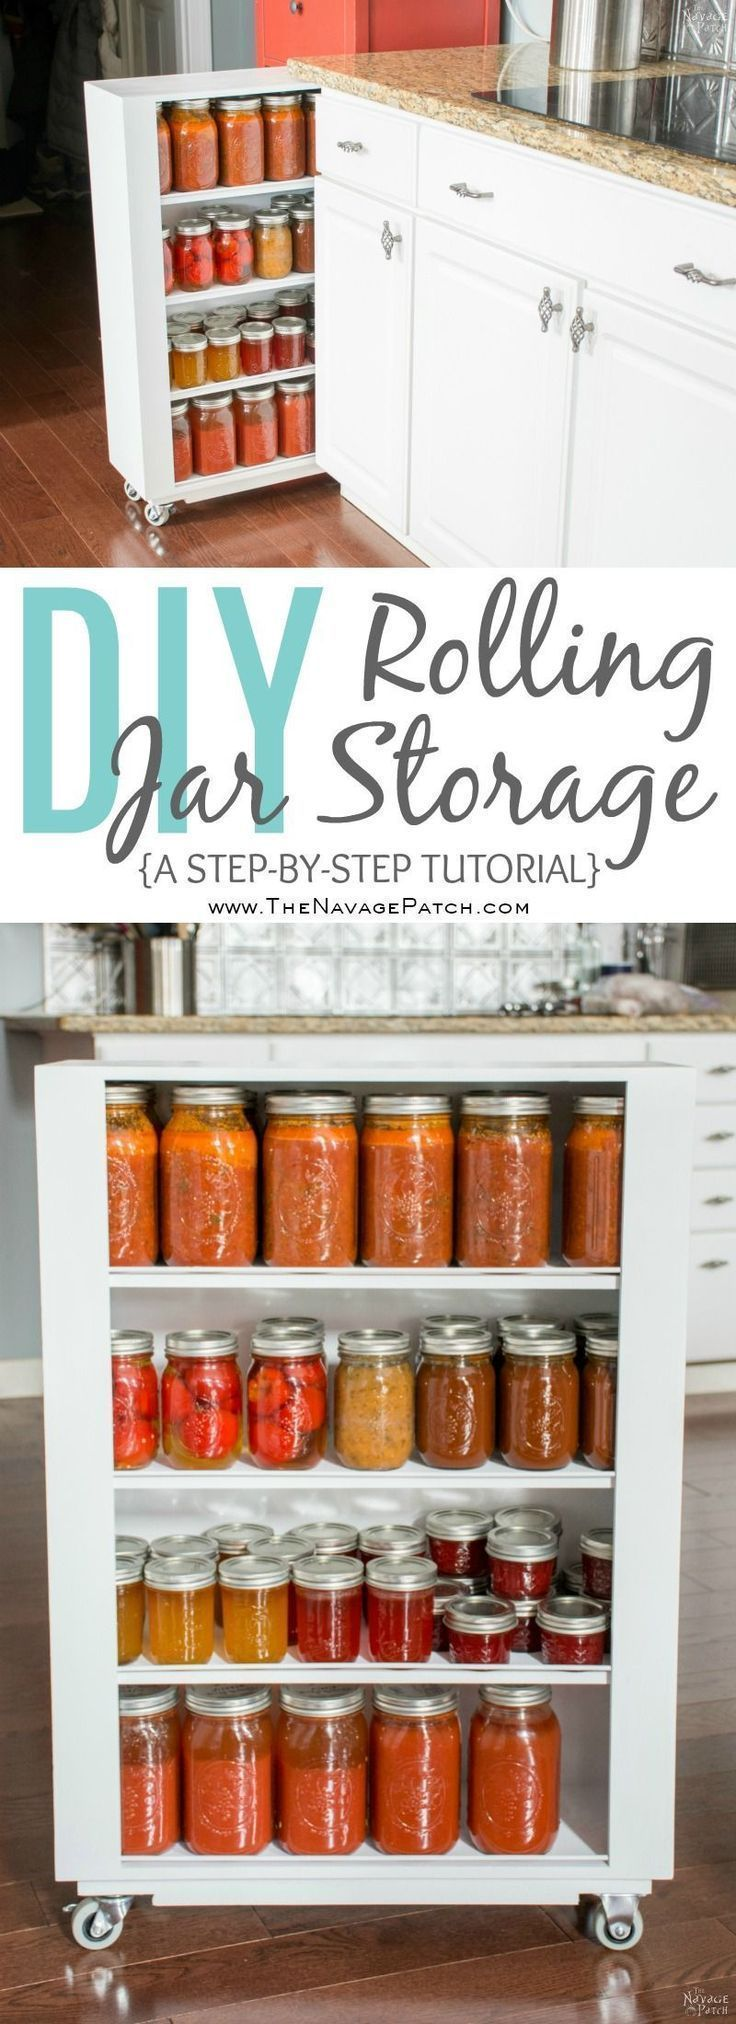 DiY Rolling Storage Diy pull out kitchen